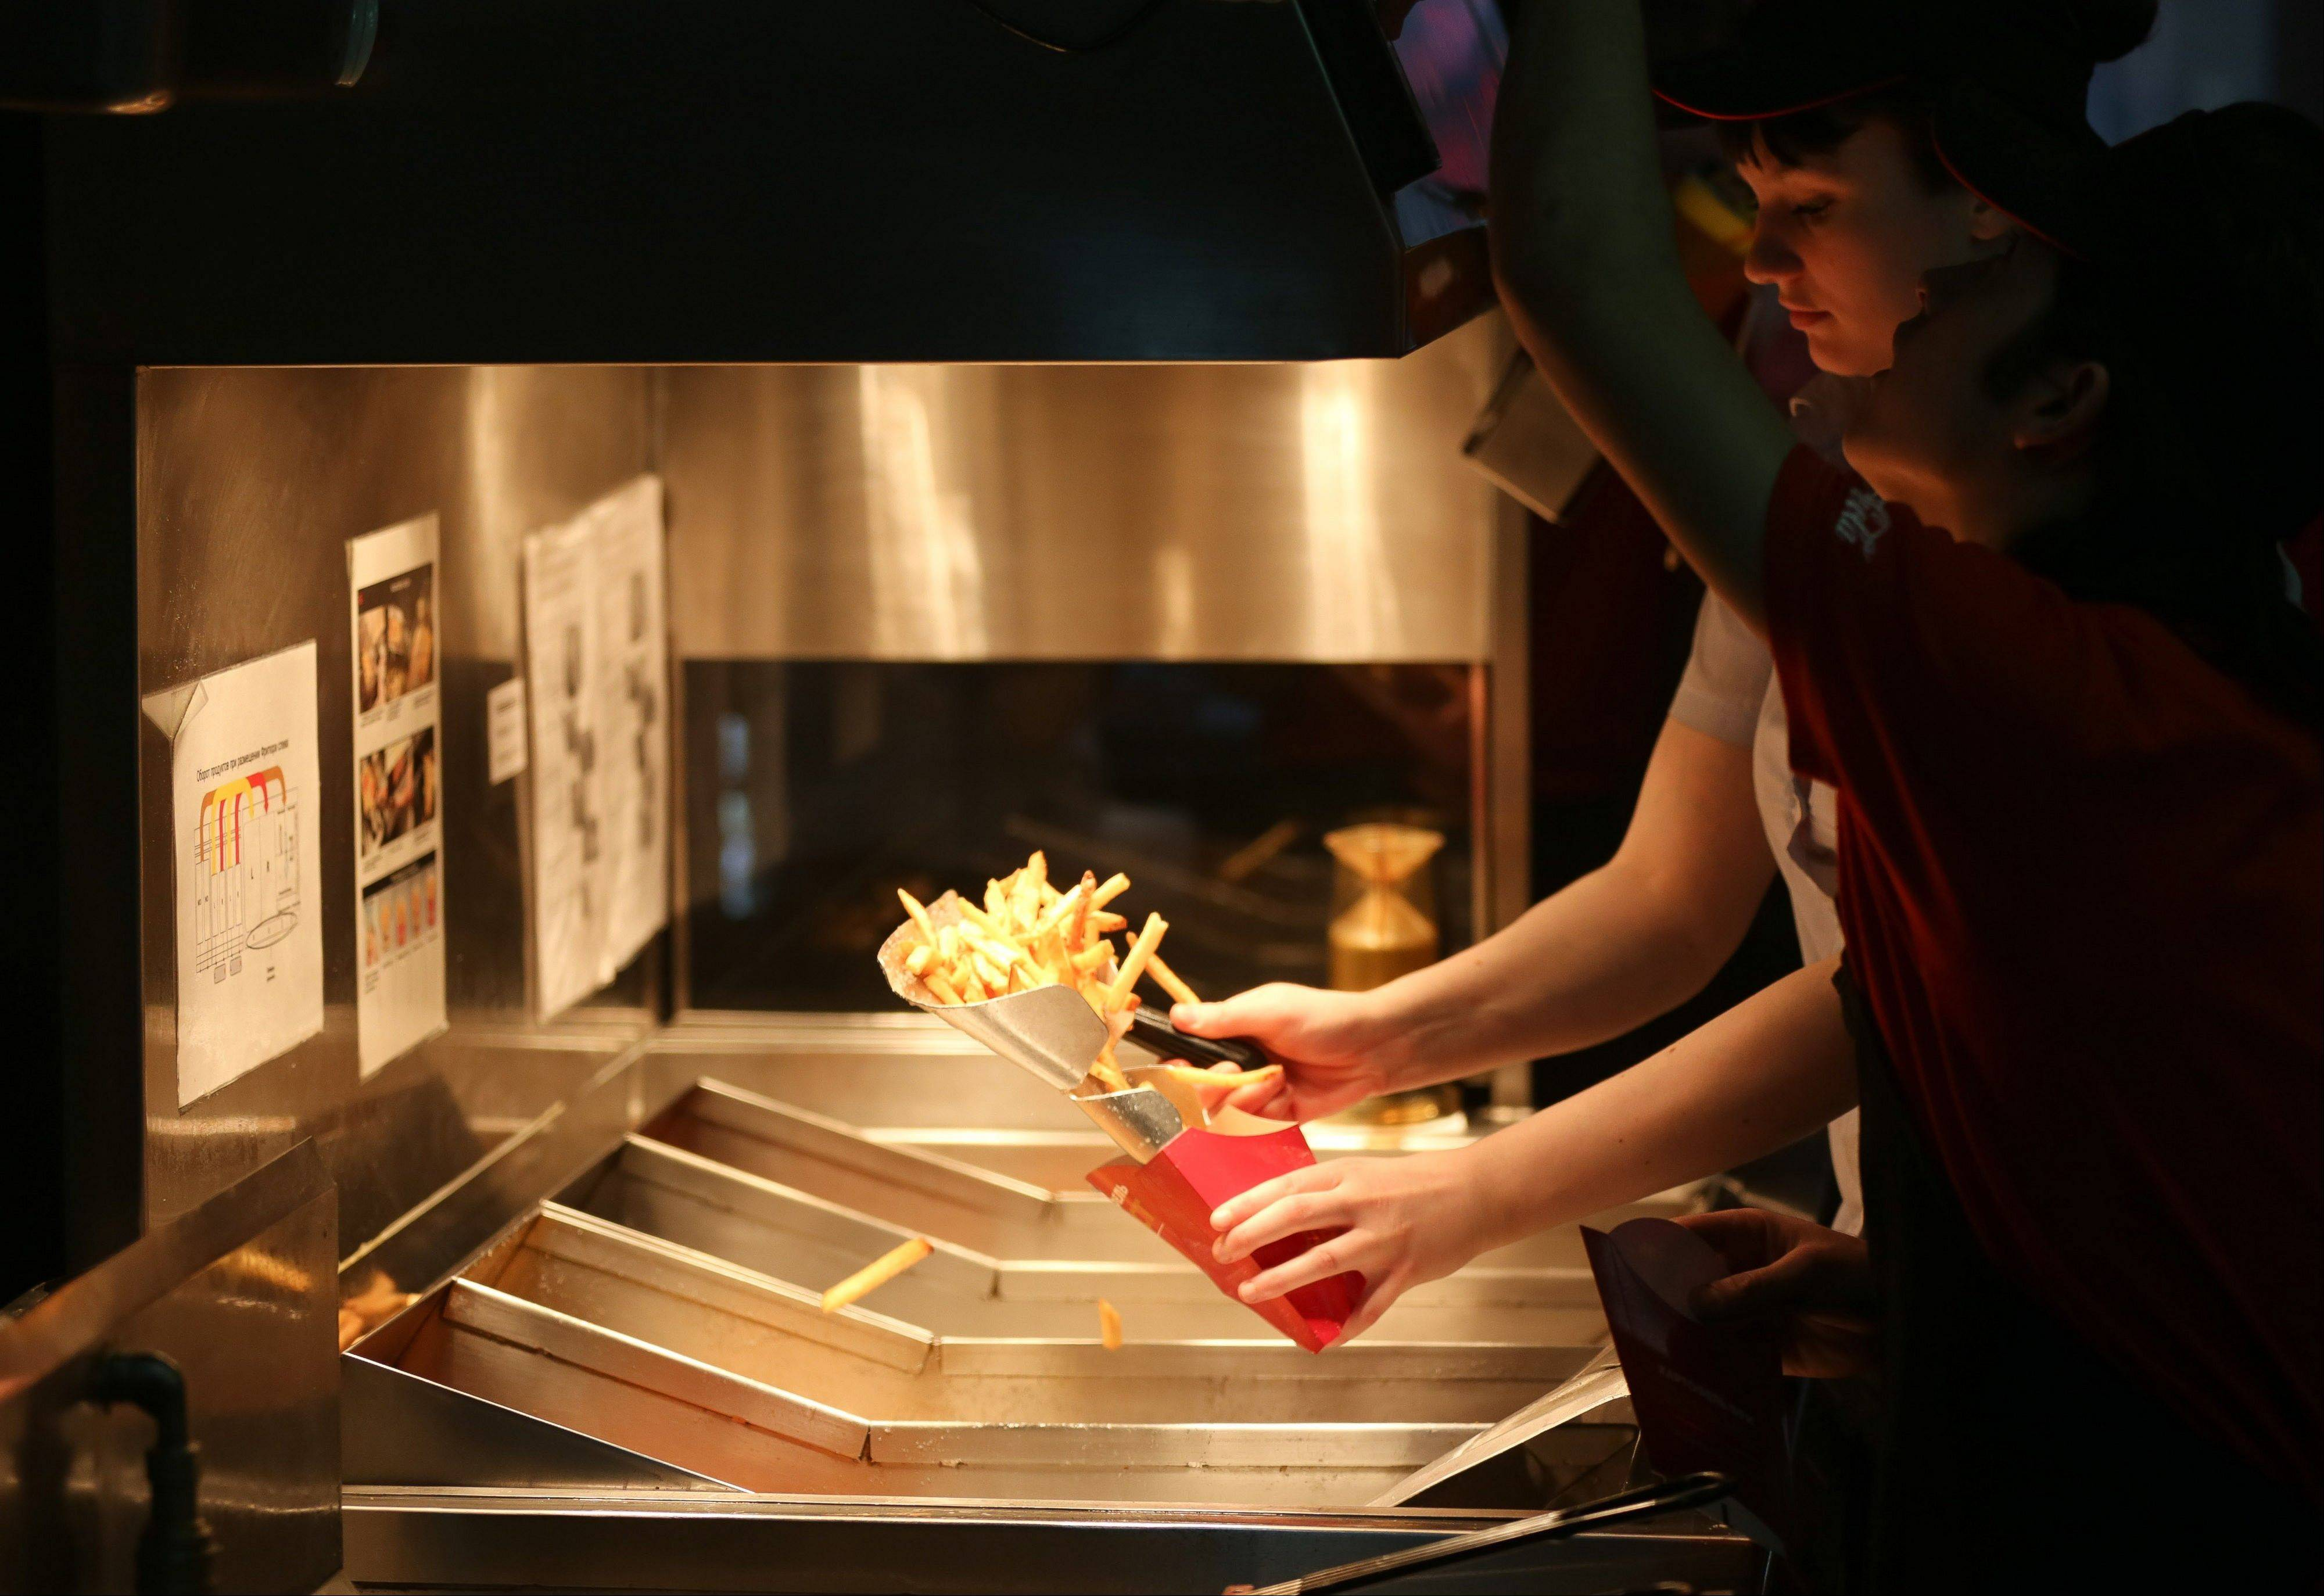 An employee prepares a portion of french fries for a customer in the kitchen area of a Wendy�s fast food restaurant in Moscow, Russia.